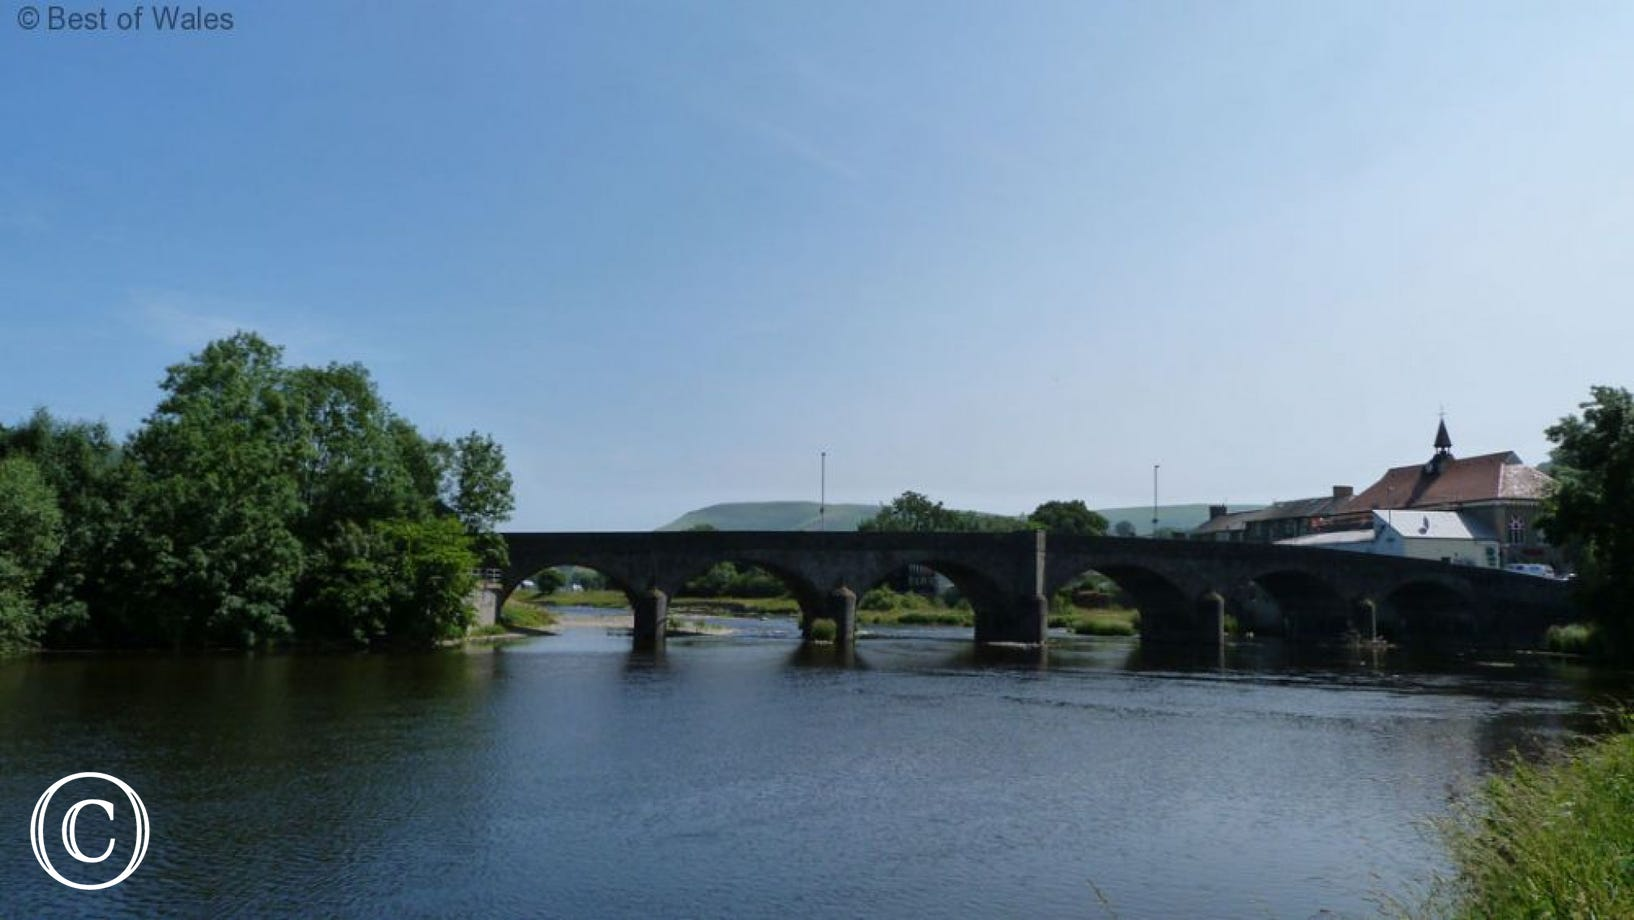 The River Wye at Builth Wells